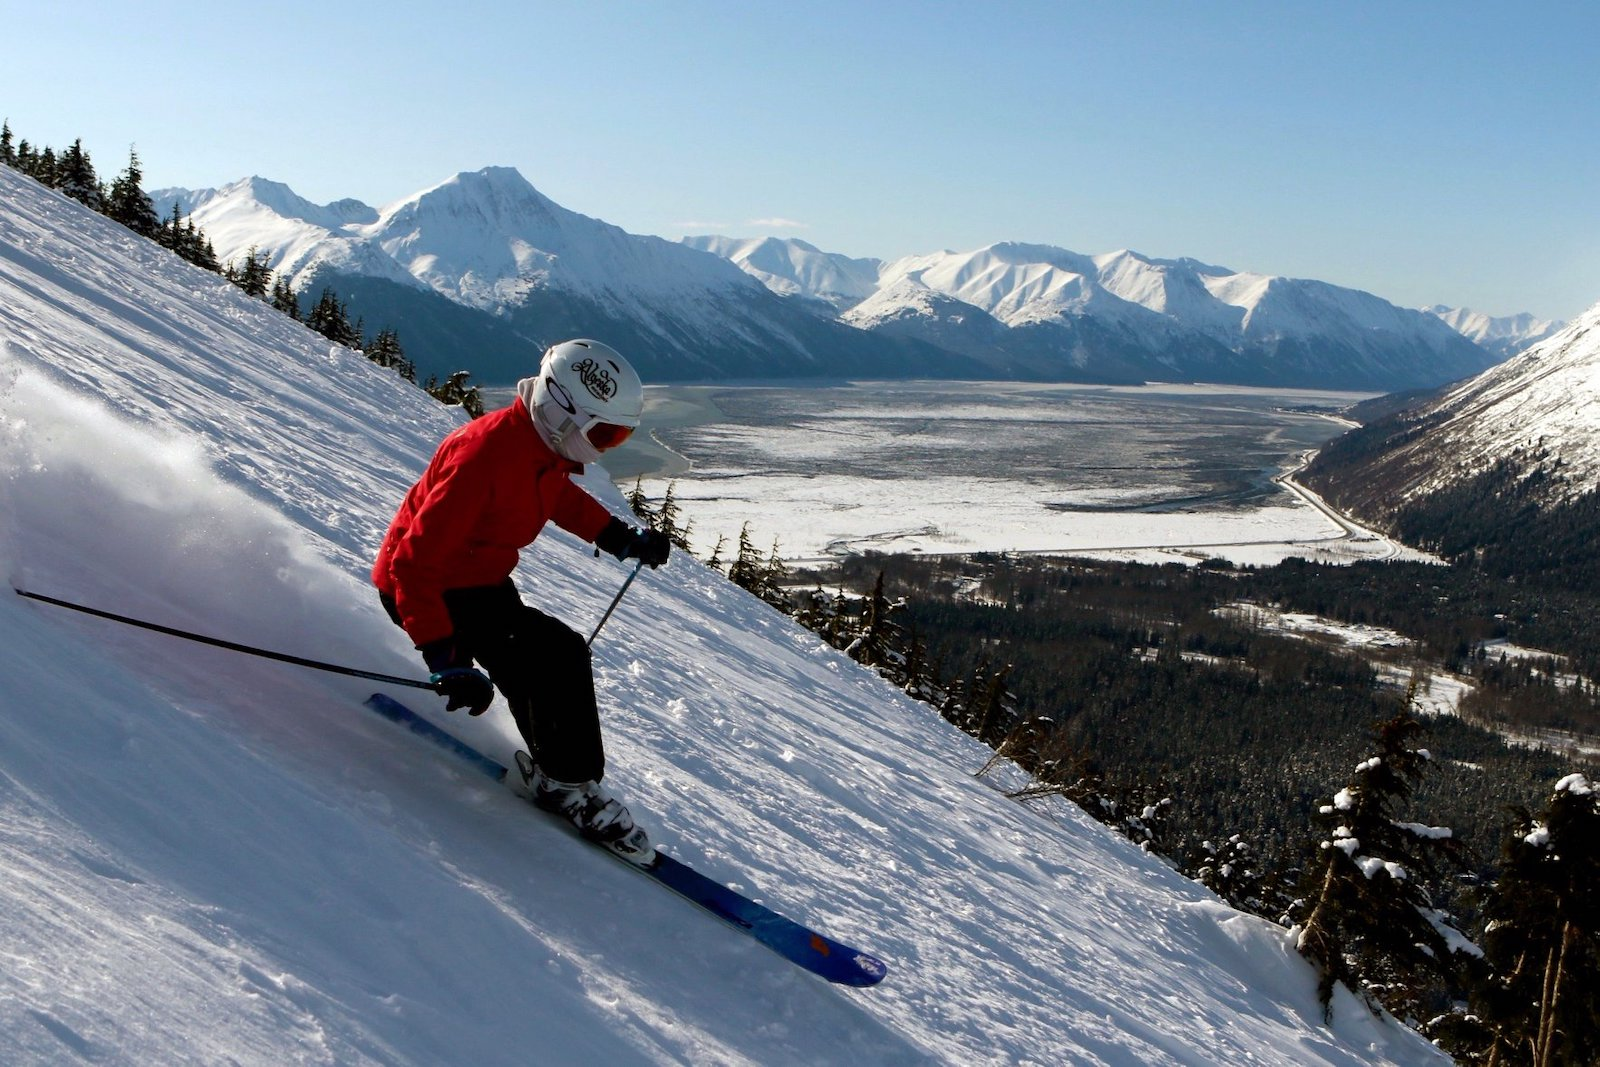 Image of a skier in red hitting the slopes at Alyeska Resort in Alaska